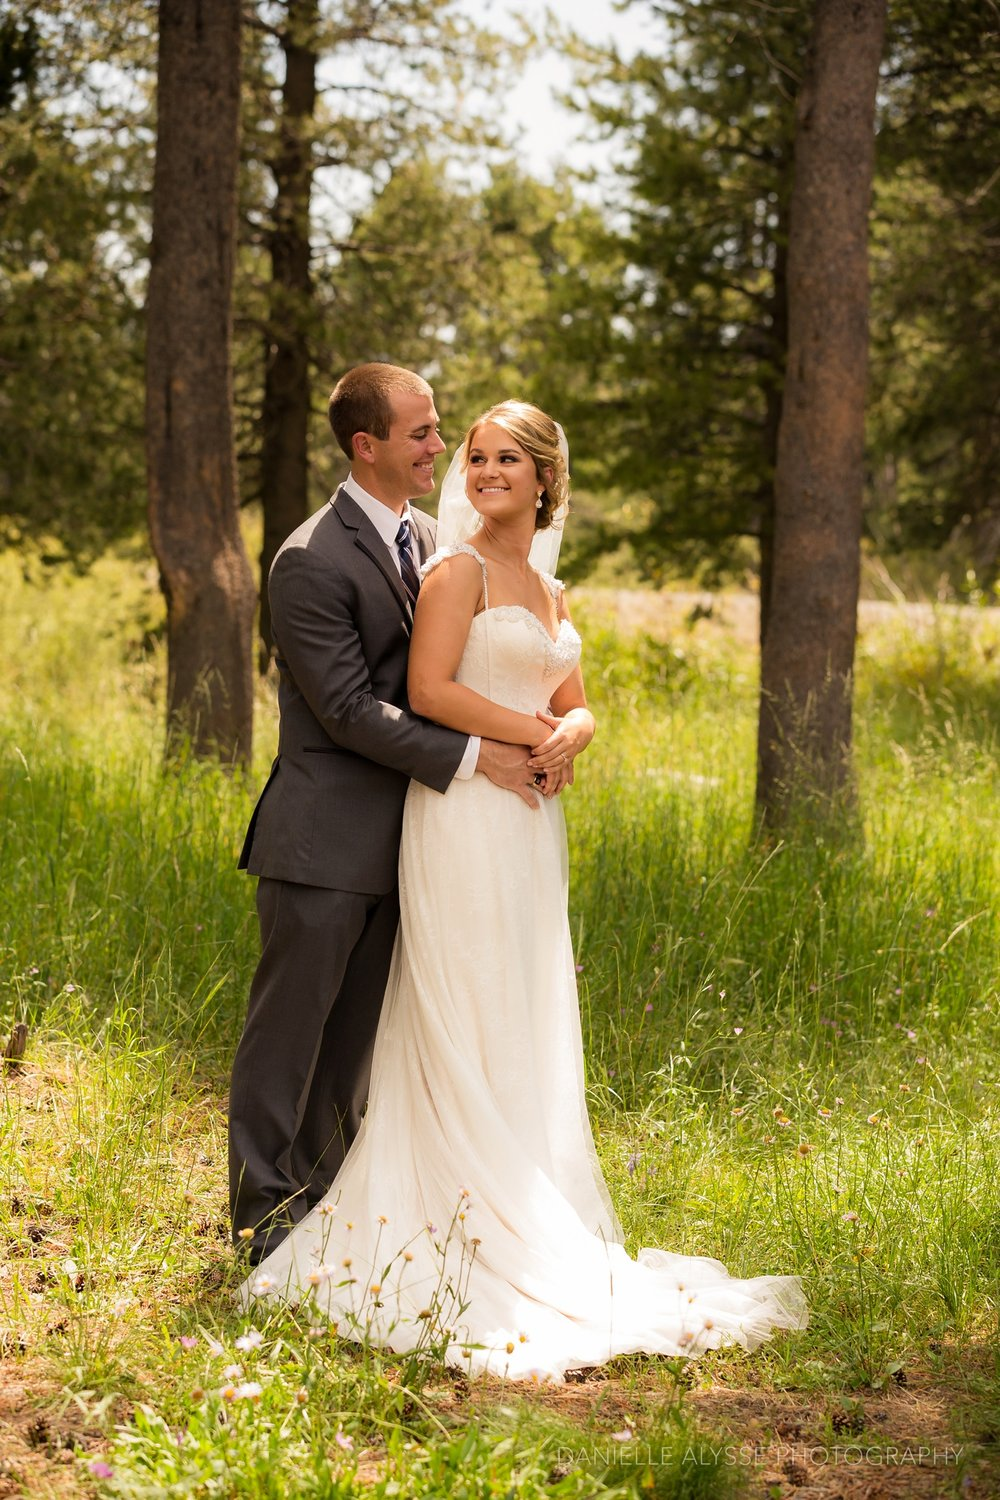 170819_blog_leslie_jeremy_wedding_bear_valley_lodge_arnold_danielle_alysse_photography_sacramento_photographer_deliver245_WEB.jpg